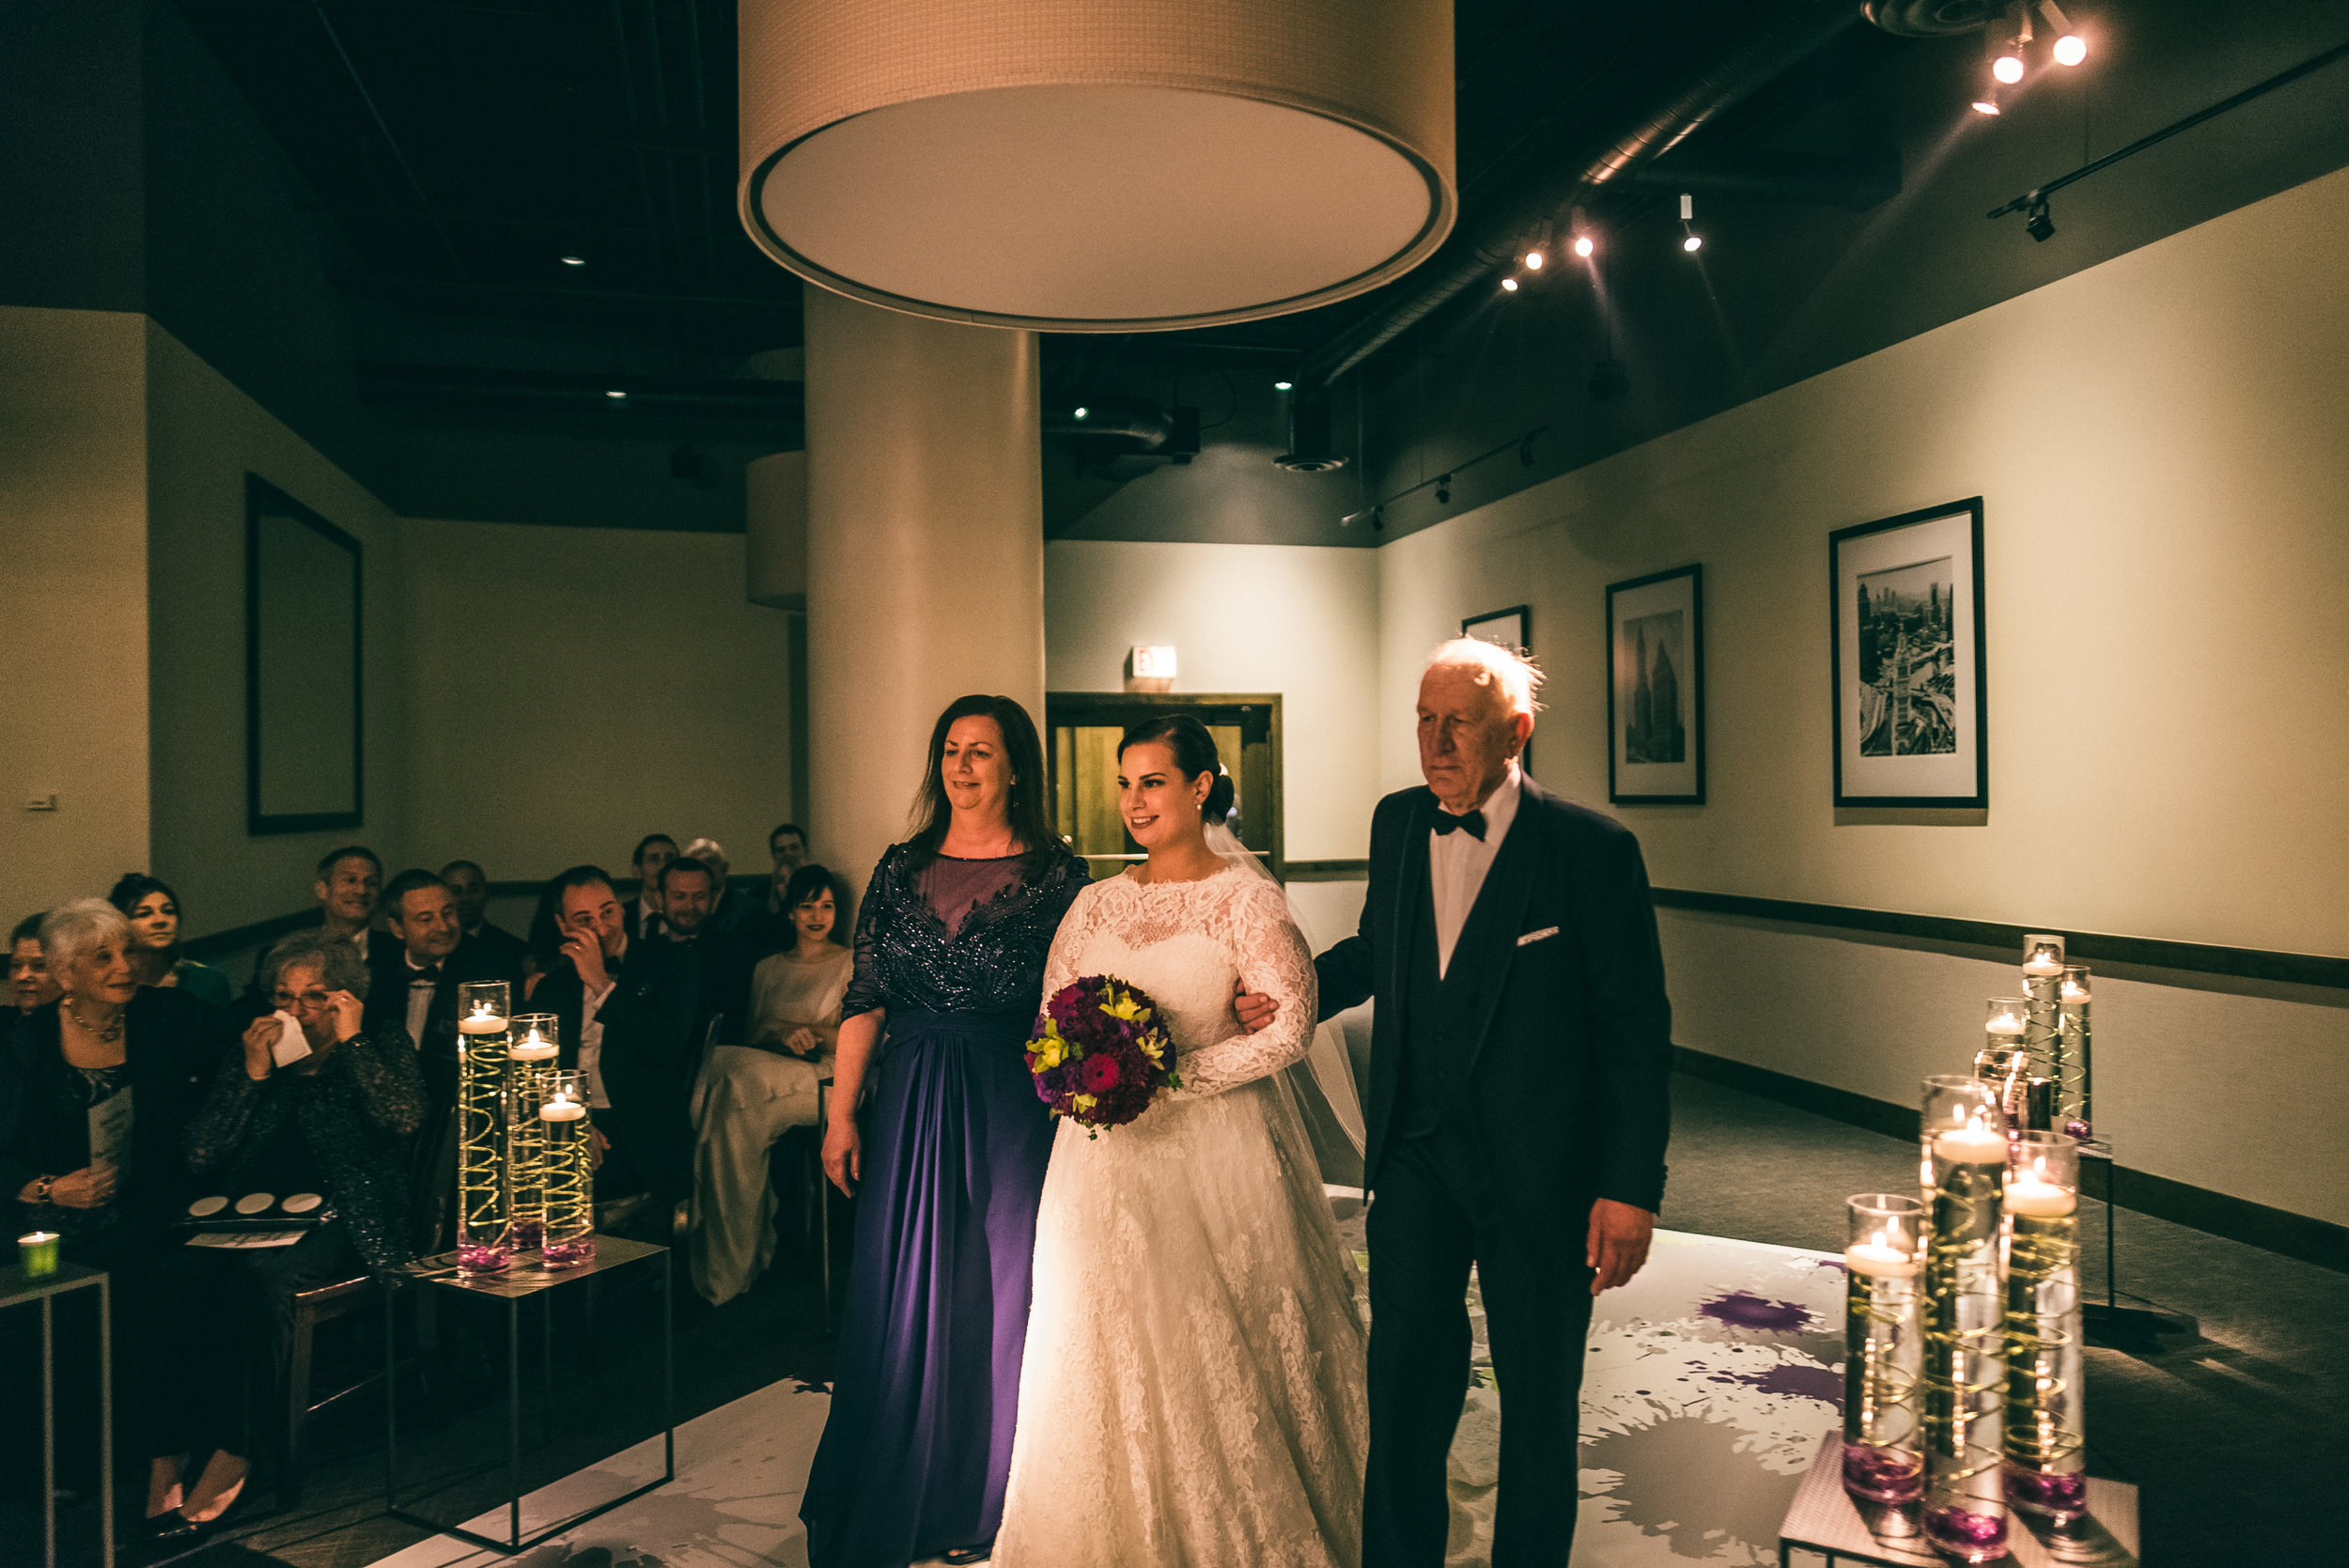 Bride walking down the aisle with her Mother and Father for Jewish ceremony at River Roast Social House in Chicago